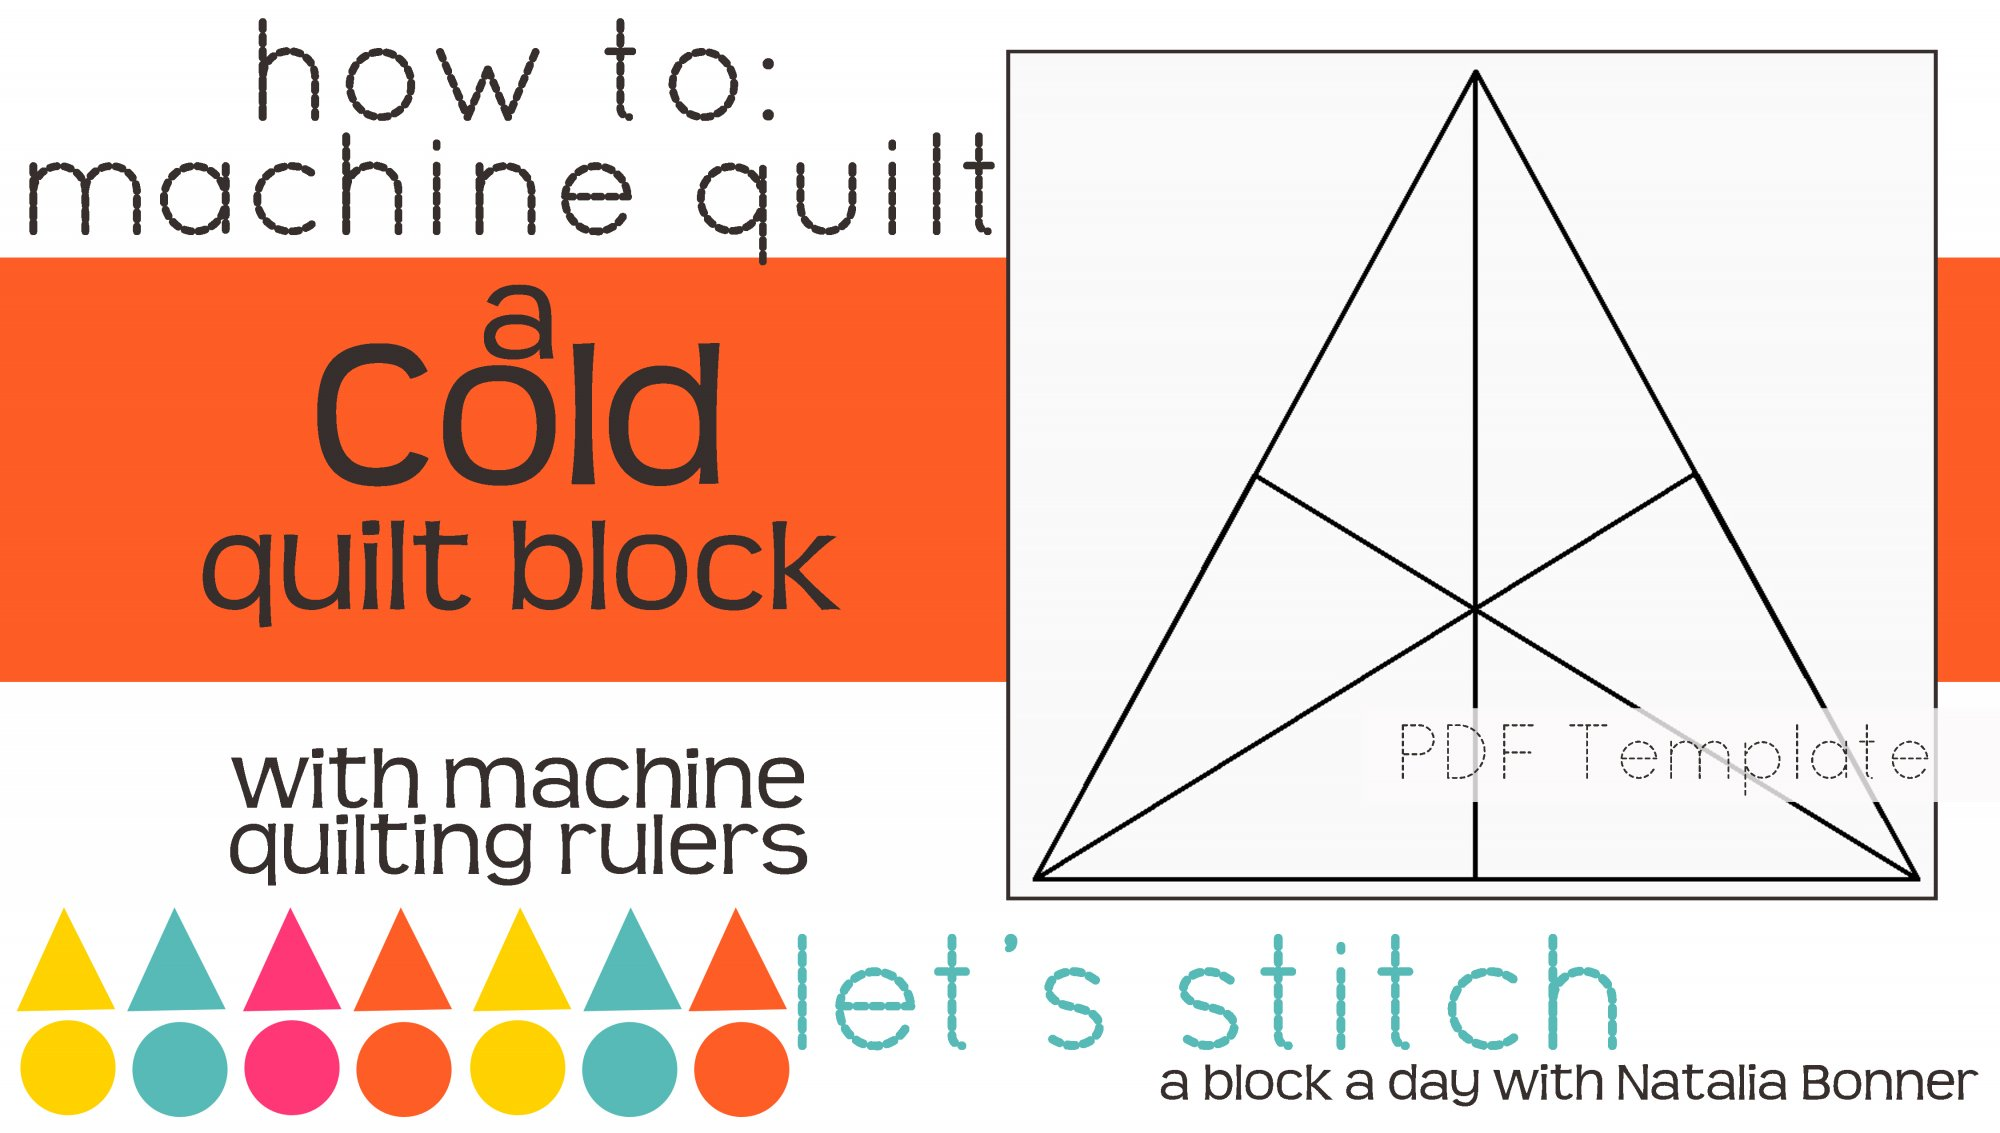 Let's Stitch - A Block a Day With Natalia Bonner - PDF - Cold